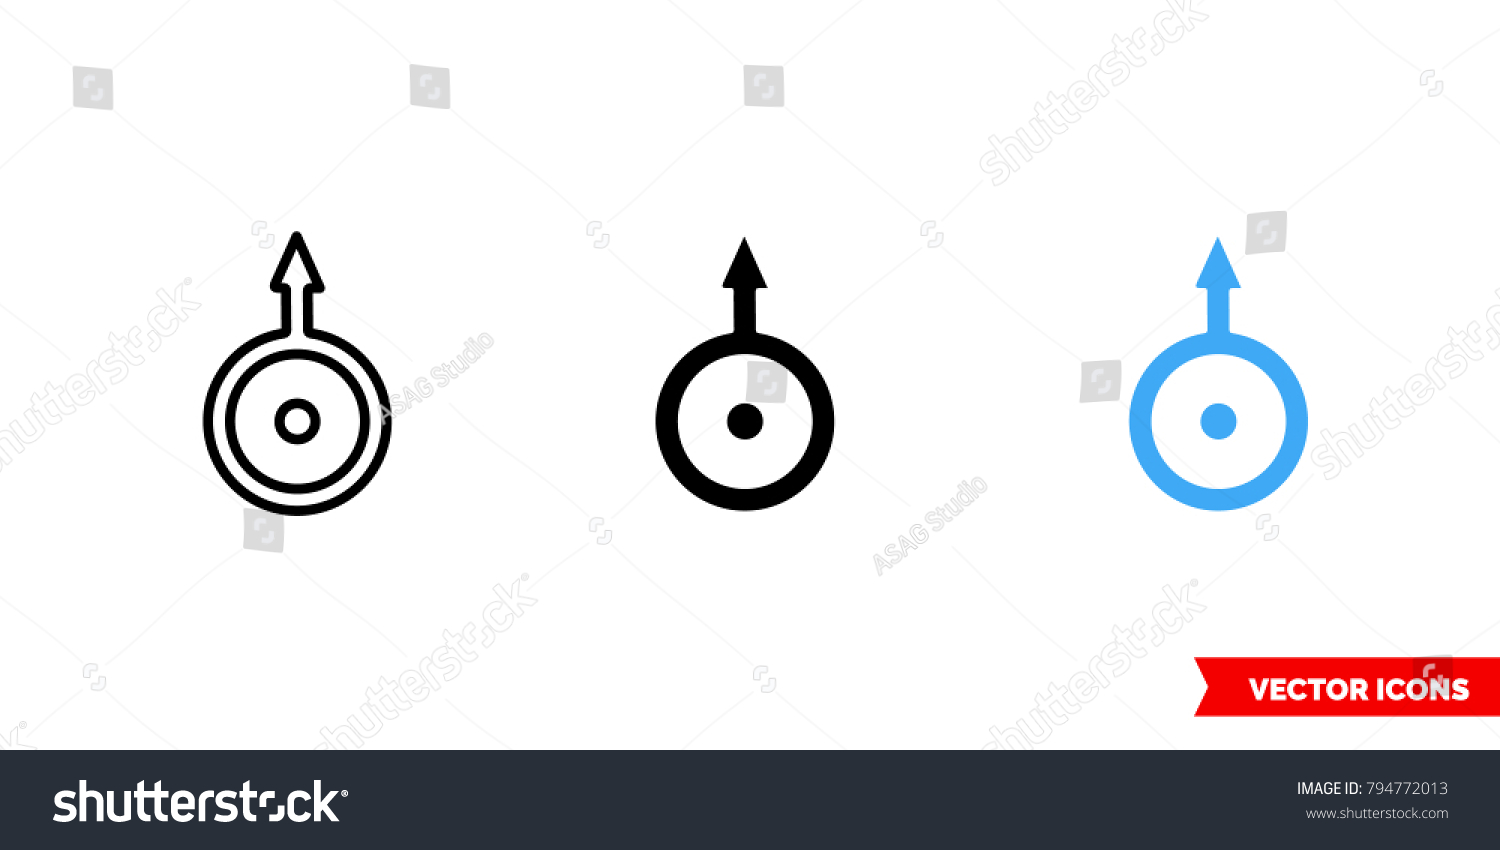 Uranus symbol icon 3 types color stock vector 794772013 shutterstock uranus symbol icon of 3 types color black and white outline isolated biocorpaavc Gallery